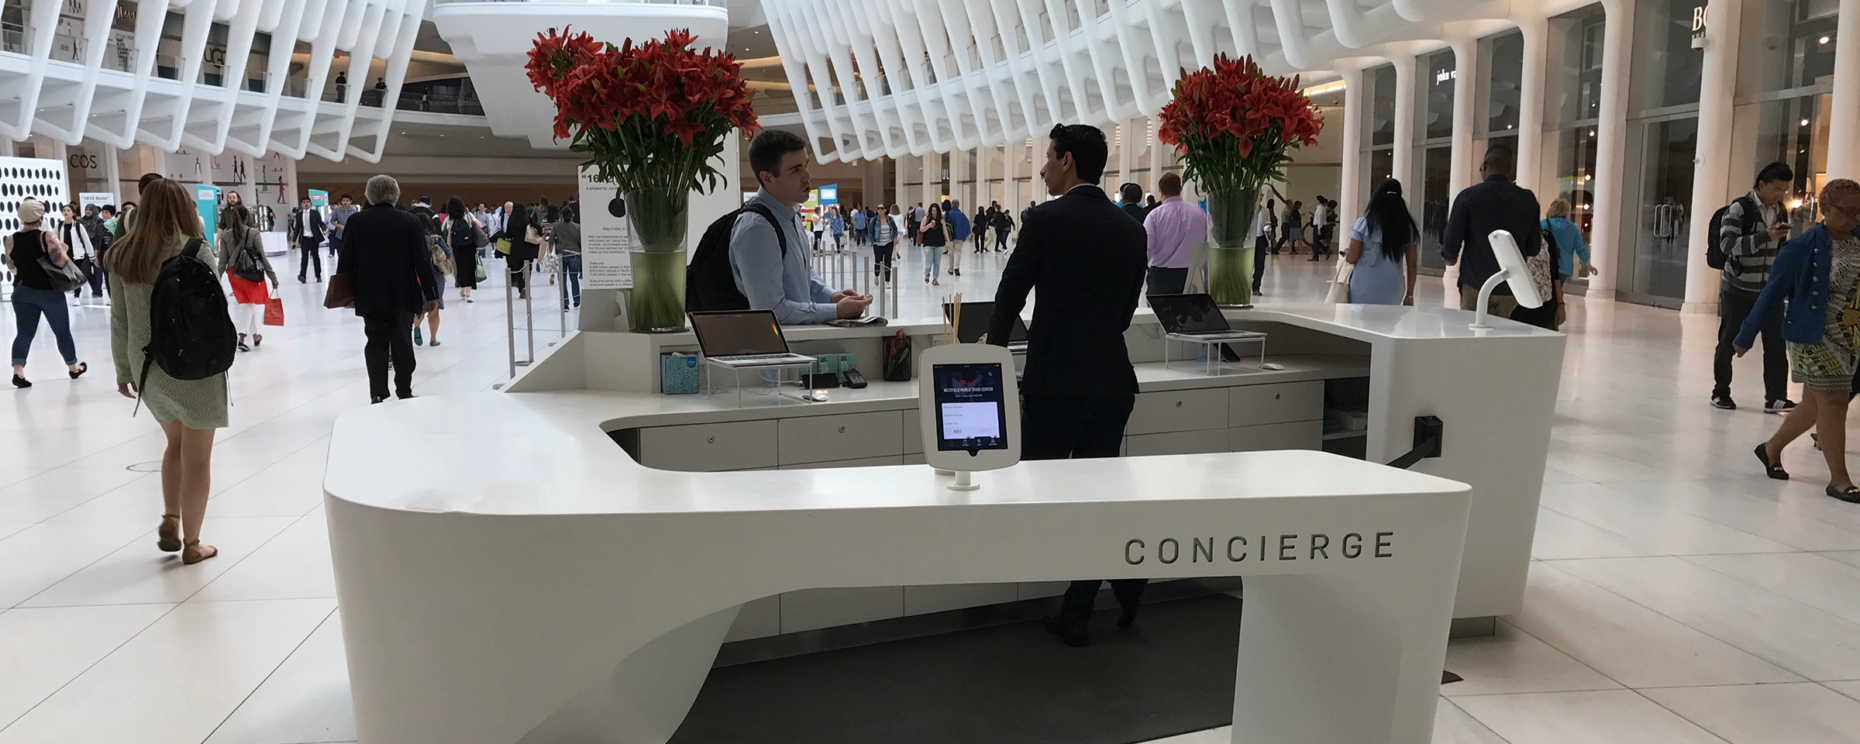 World Trade Center, New York, NY. Solid Surface Thermoformed Concierge Desk